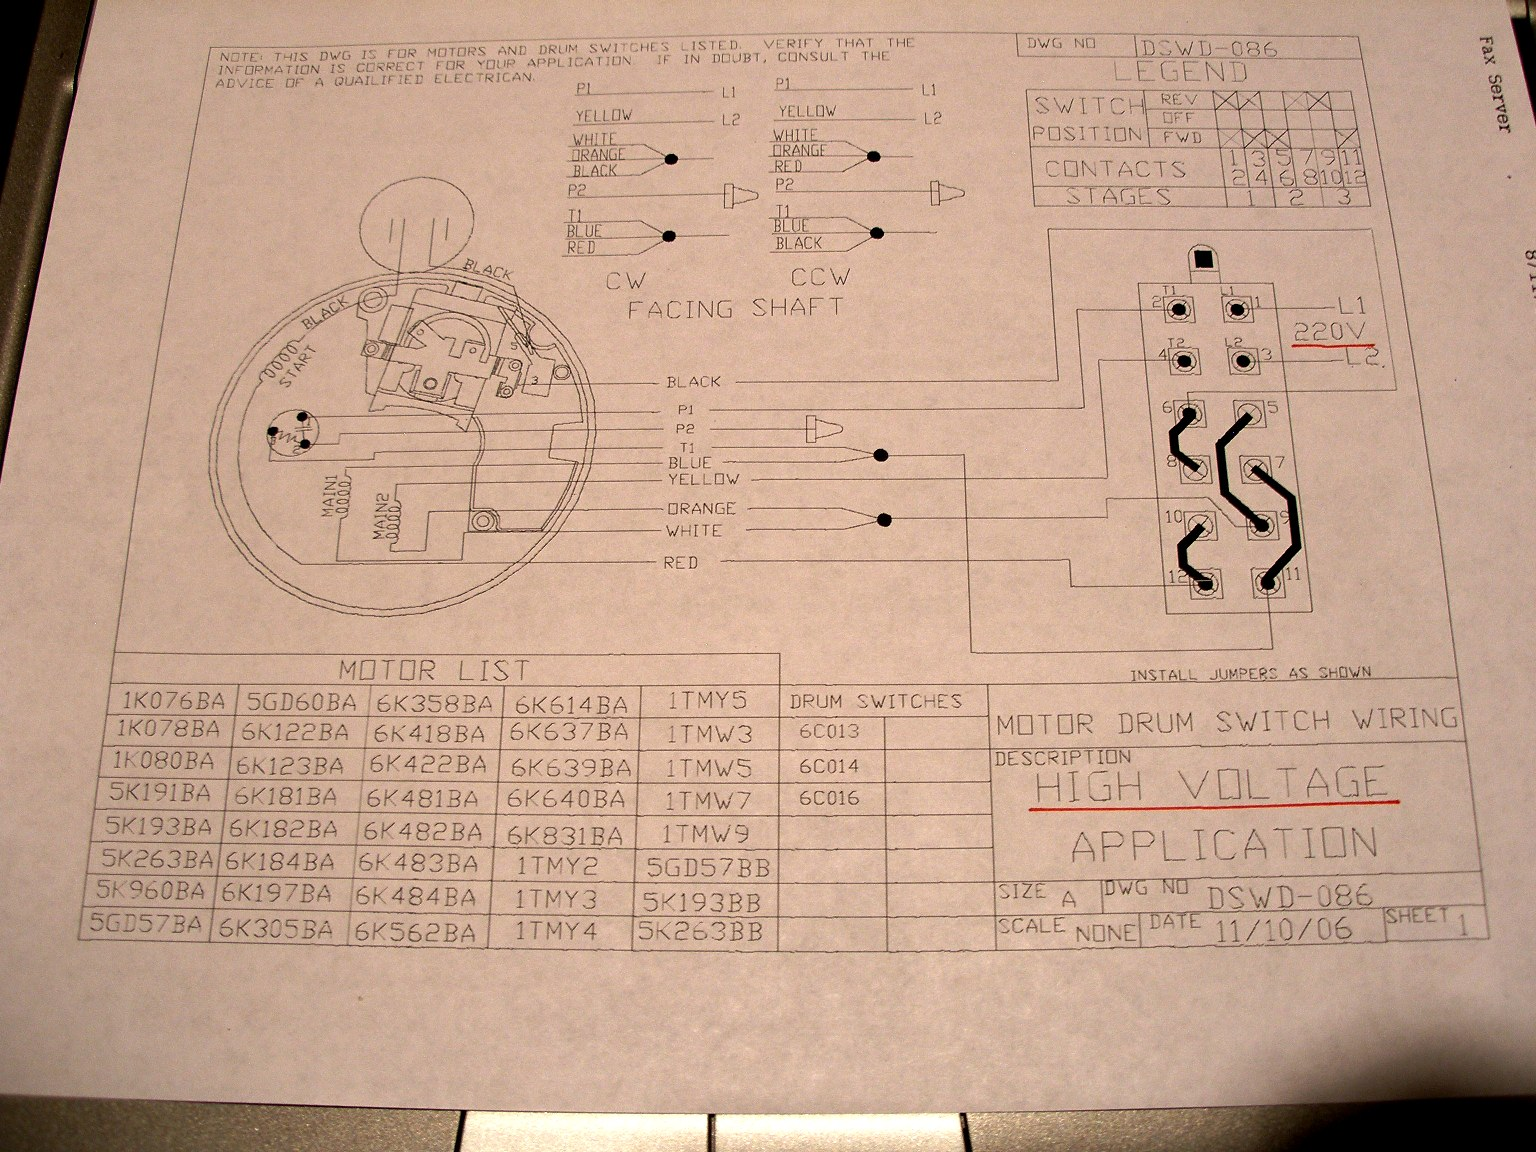 2011 08 11_193044_grainger_dayton_high_voltage_diagram the motor on my boat lift quit it was a ao motor, open ended and ao smith boat lift motor wiring diagram at panicattacktreatment.co